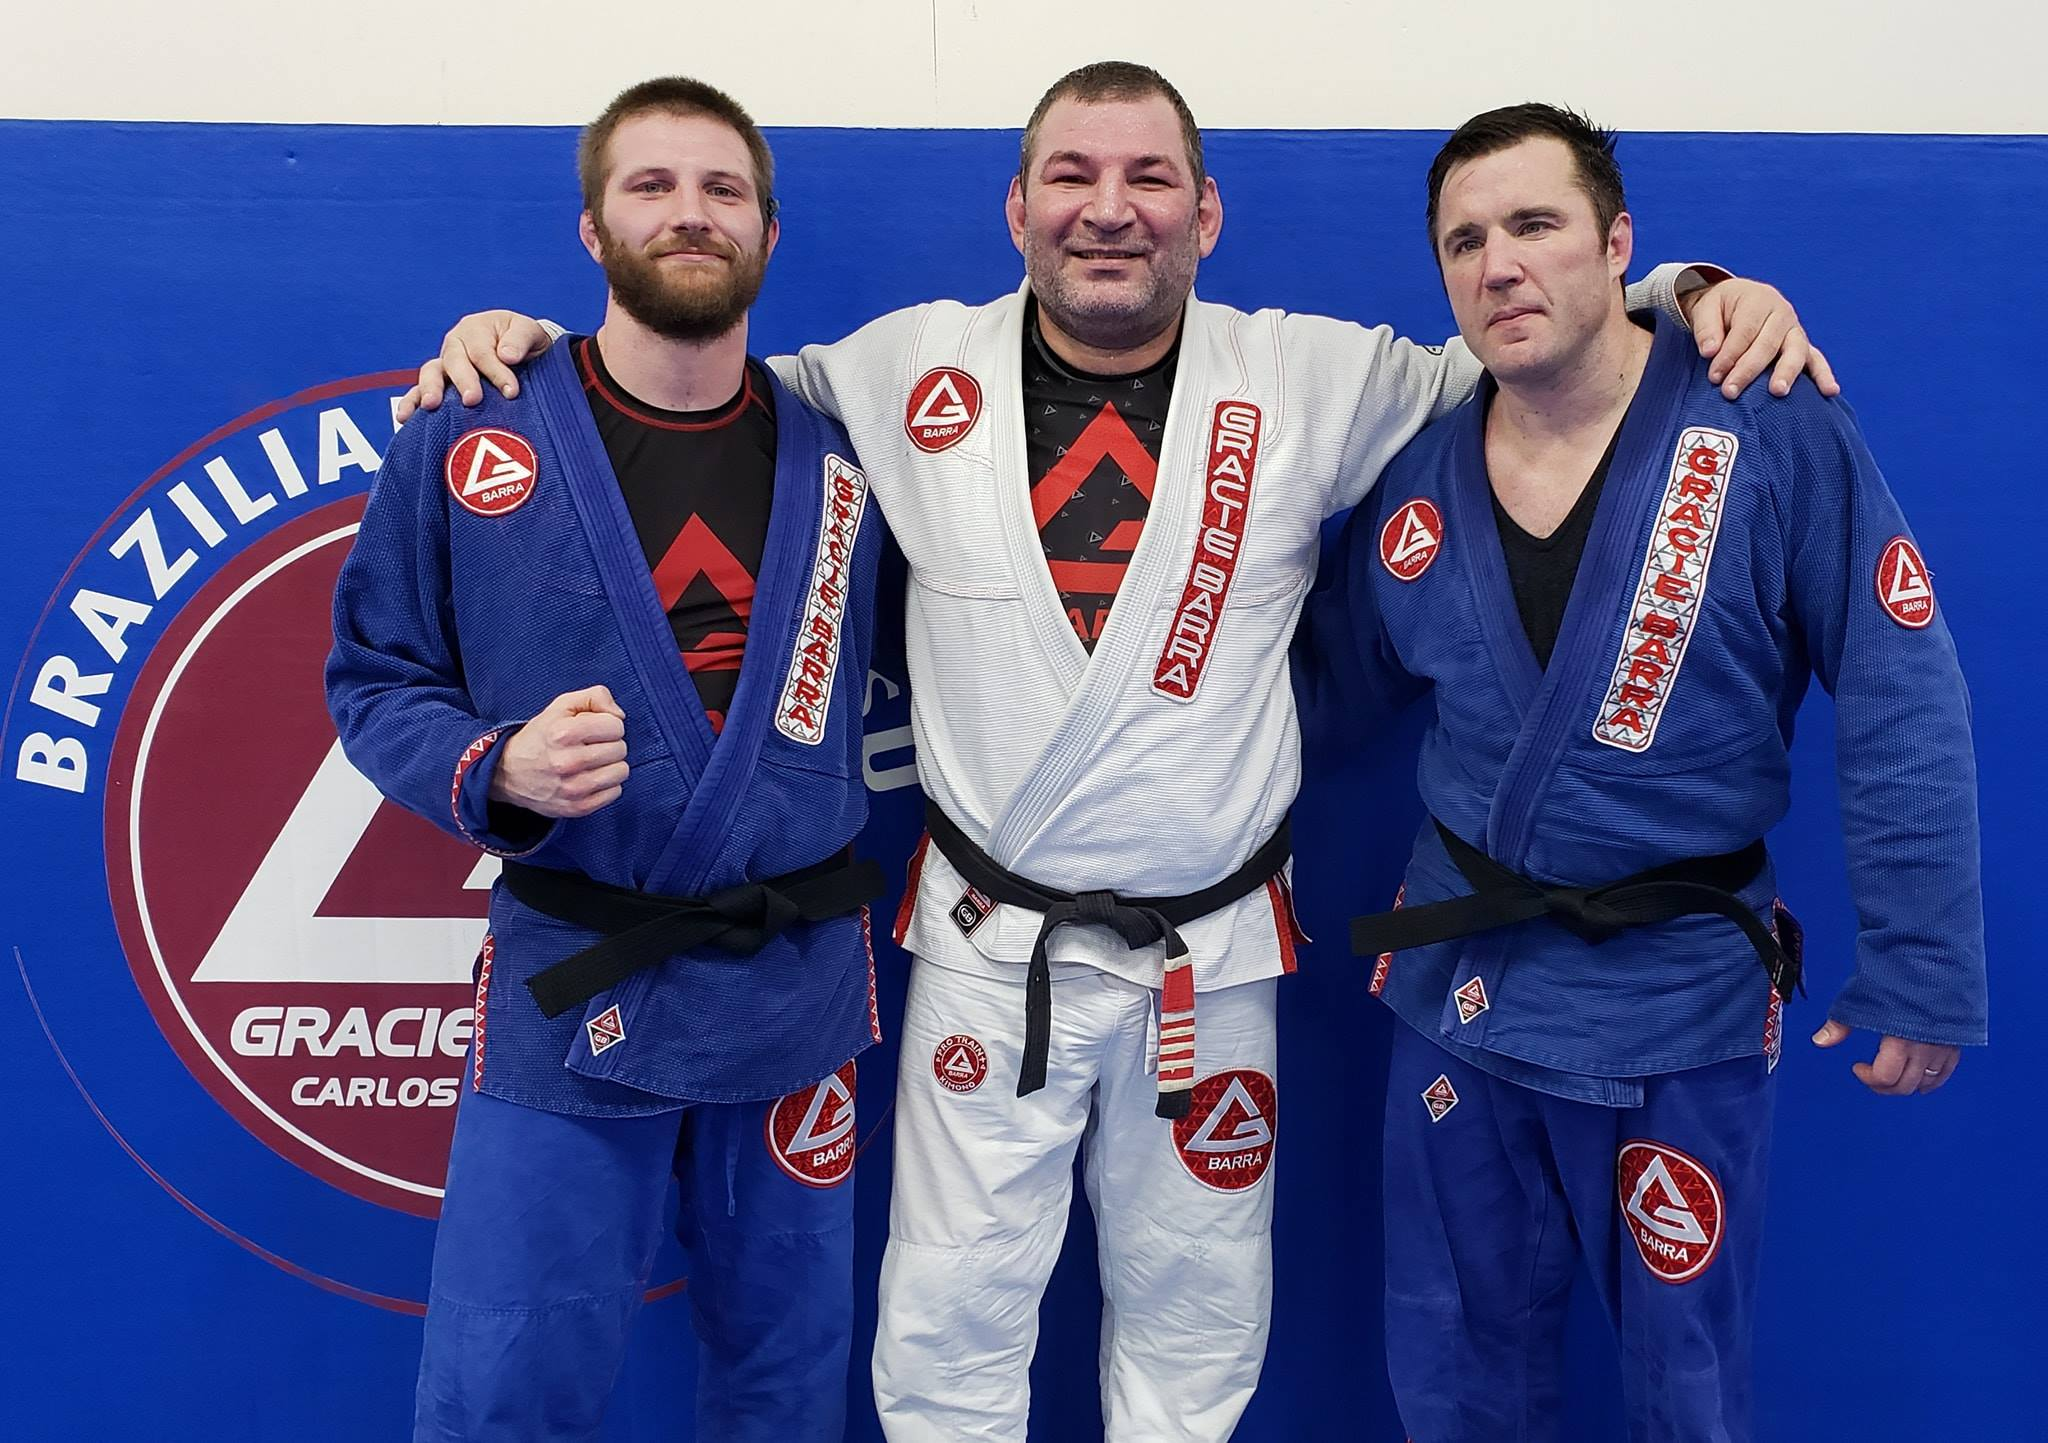 Before He Started Training BJJ, Chael Sonnen Had Self-Promoted Himself to Black Belt